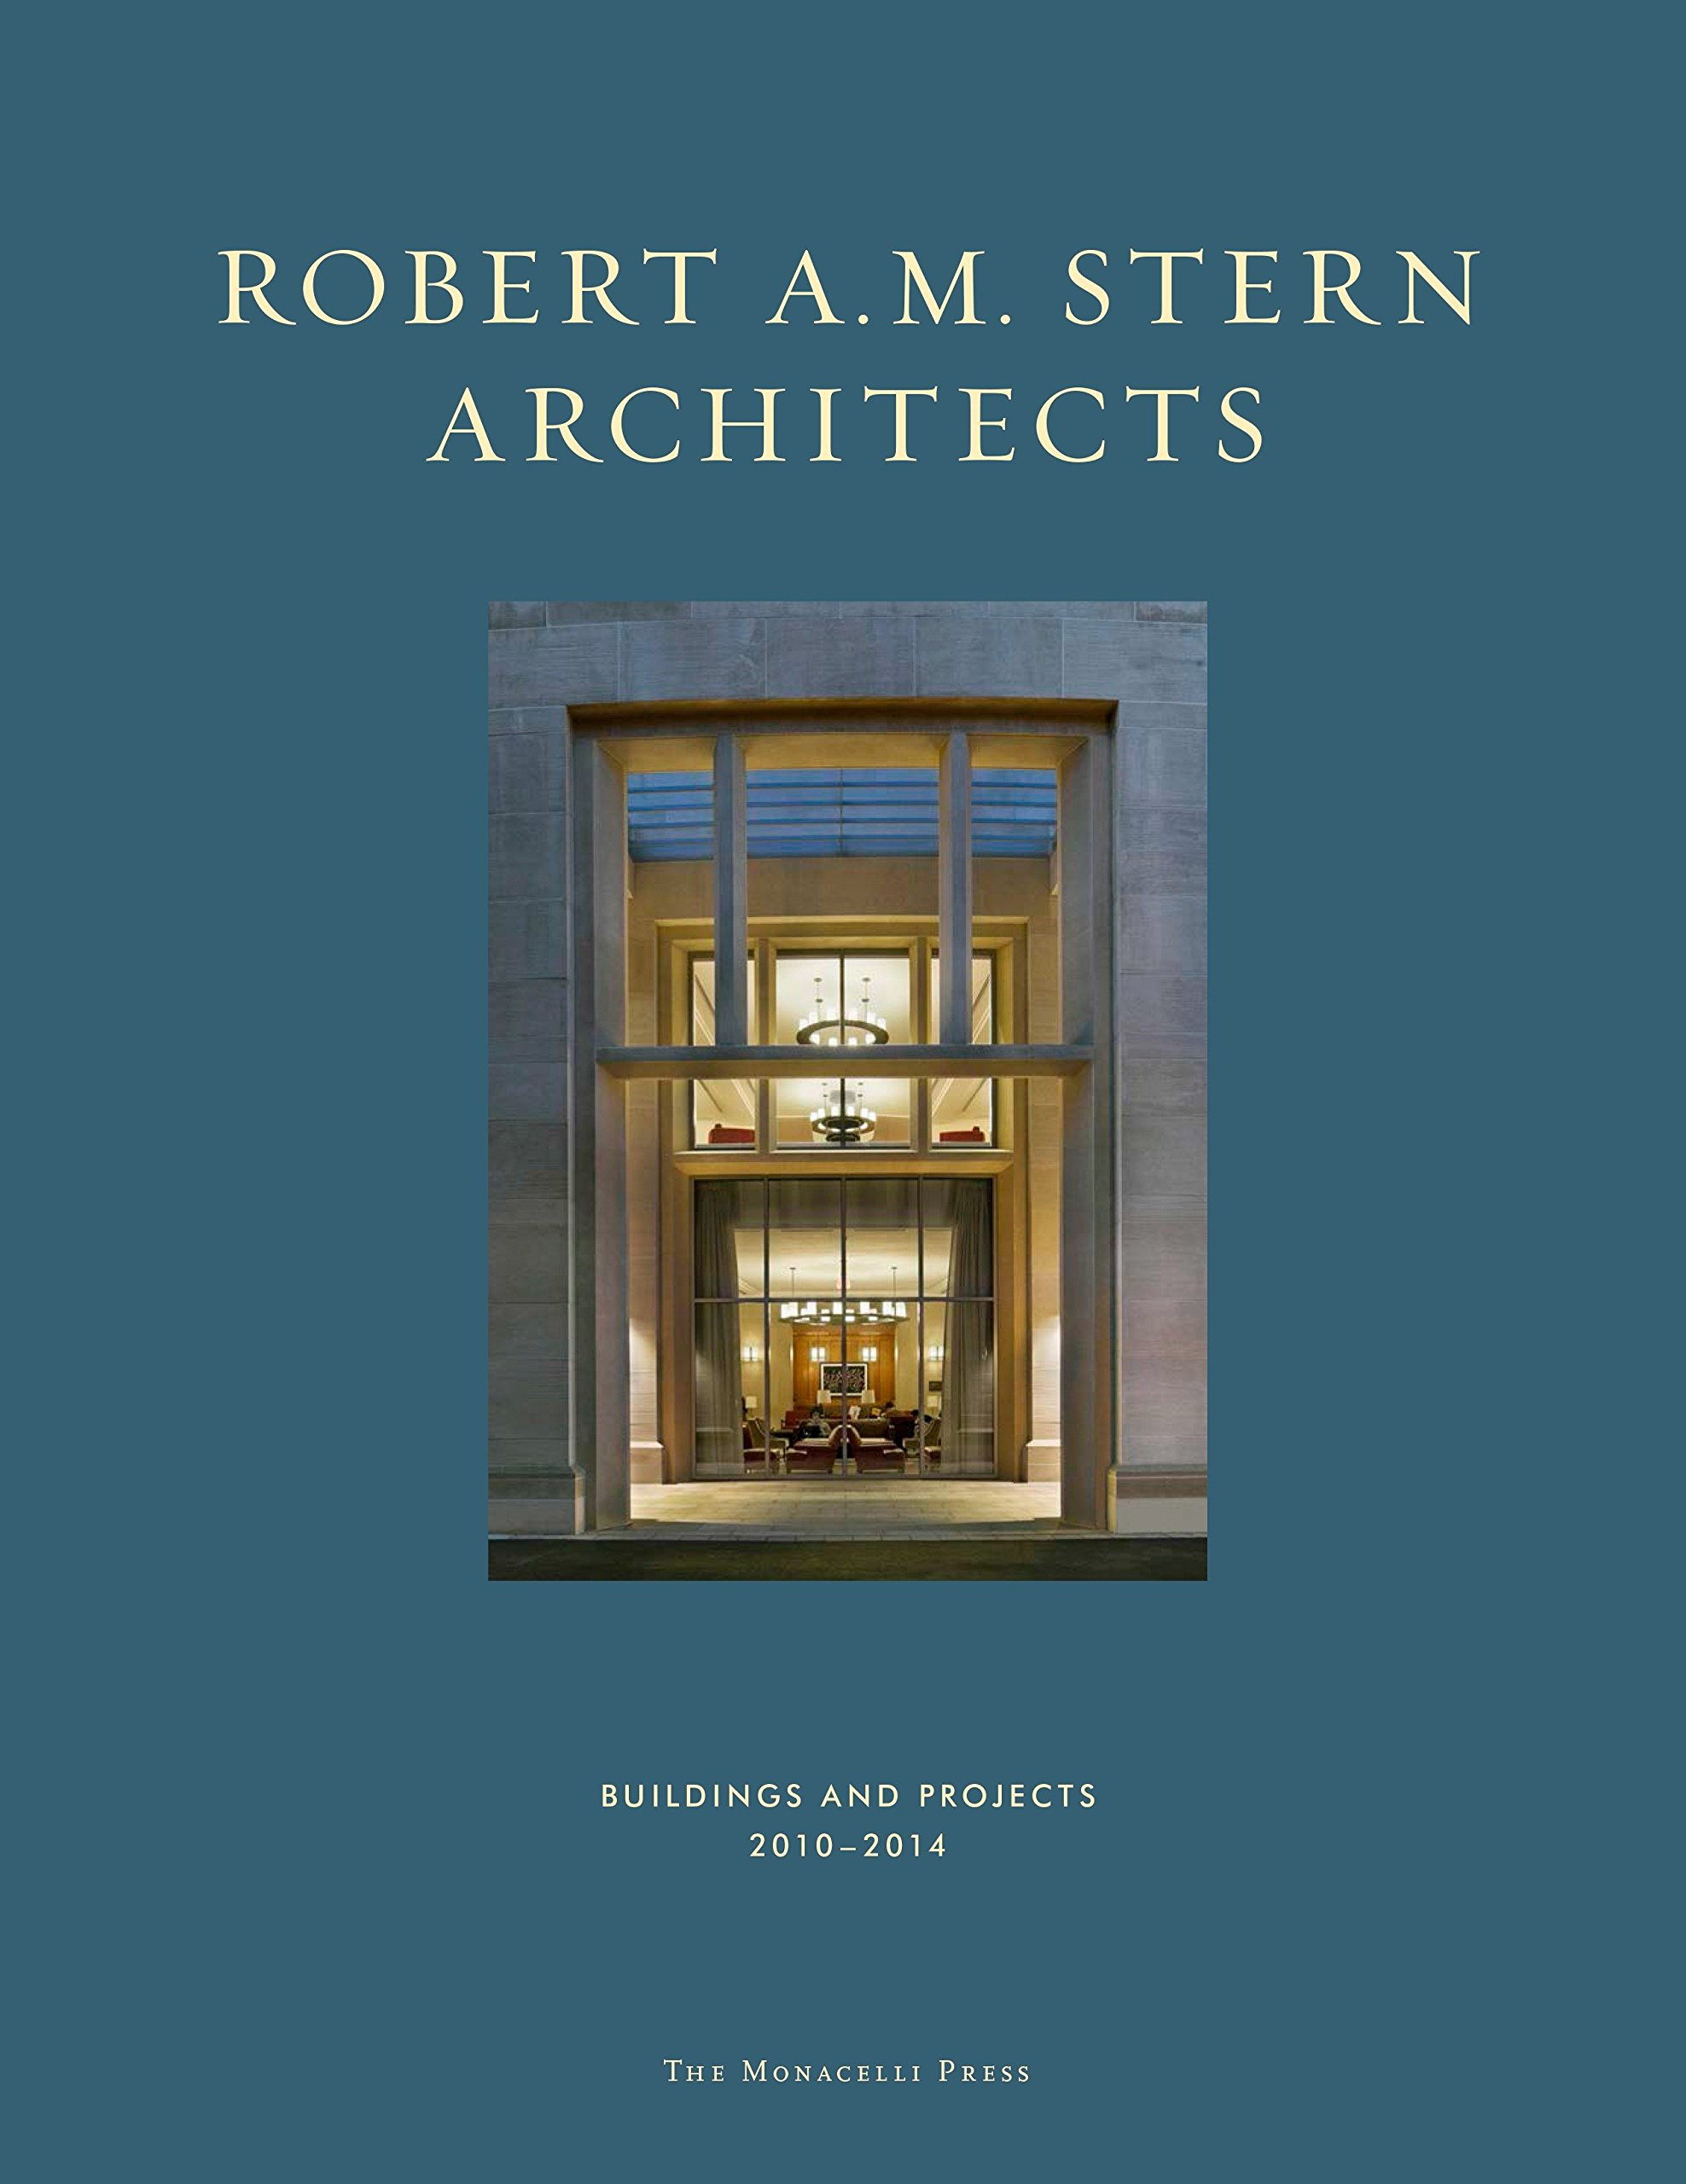 Robert A. M. Stern Architects: Buildings and Projects 2010-2014 by The Monacelli Press